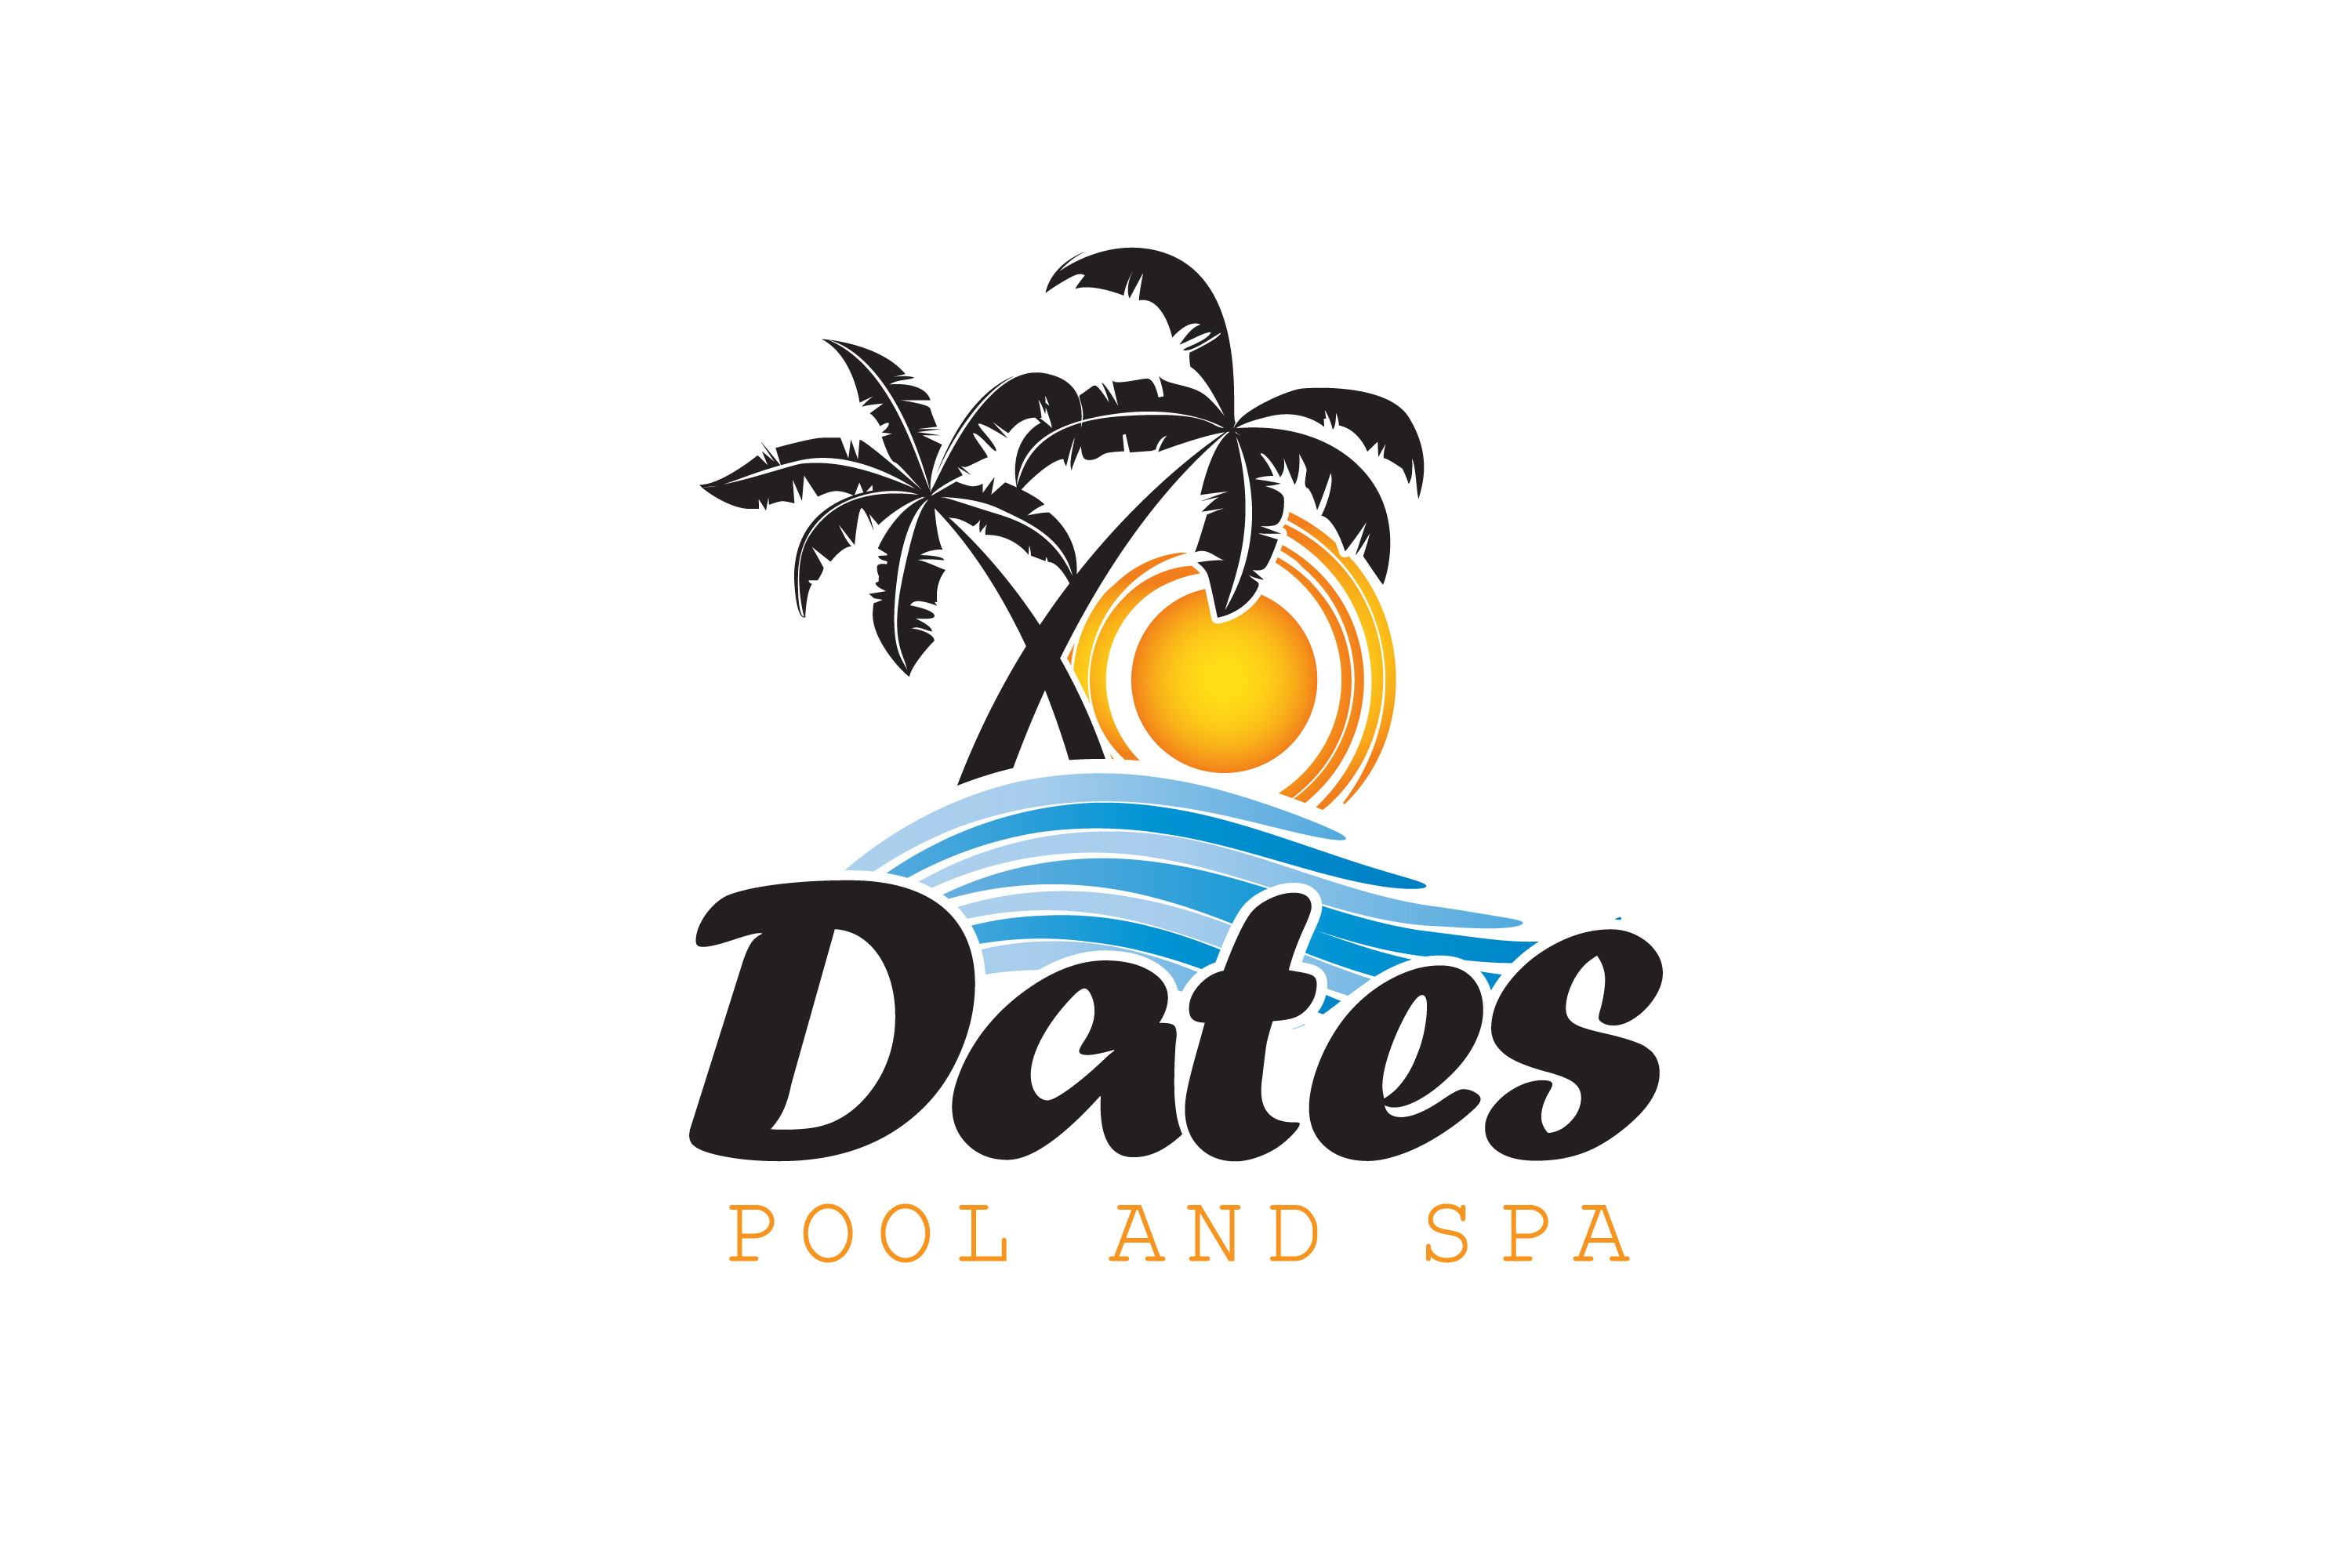 Dates Pool and Spa